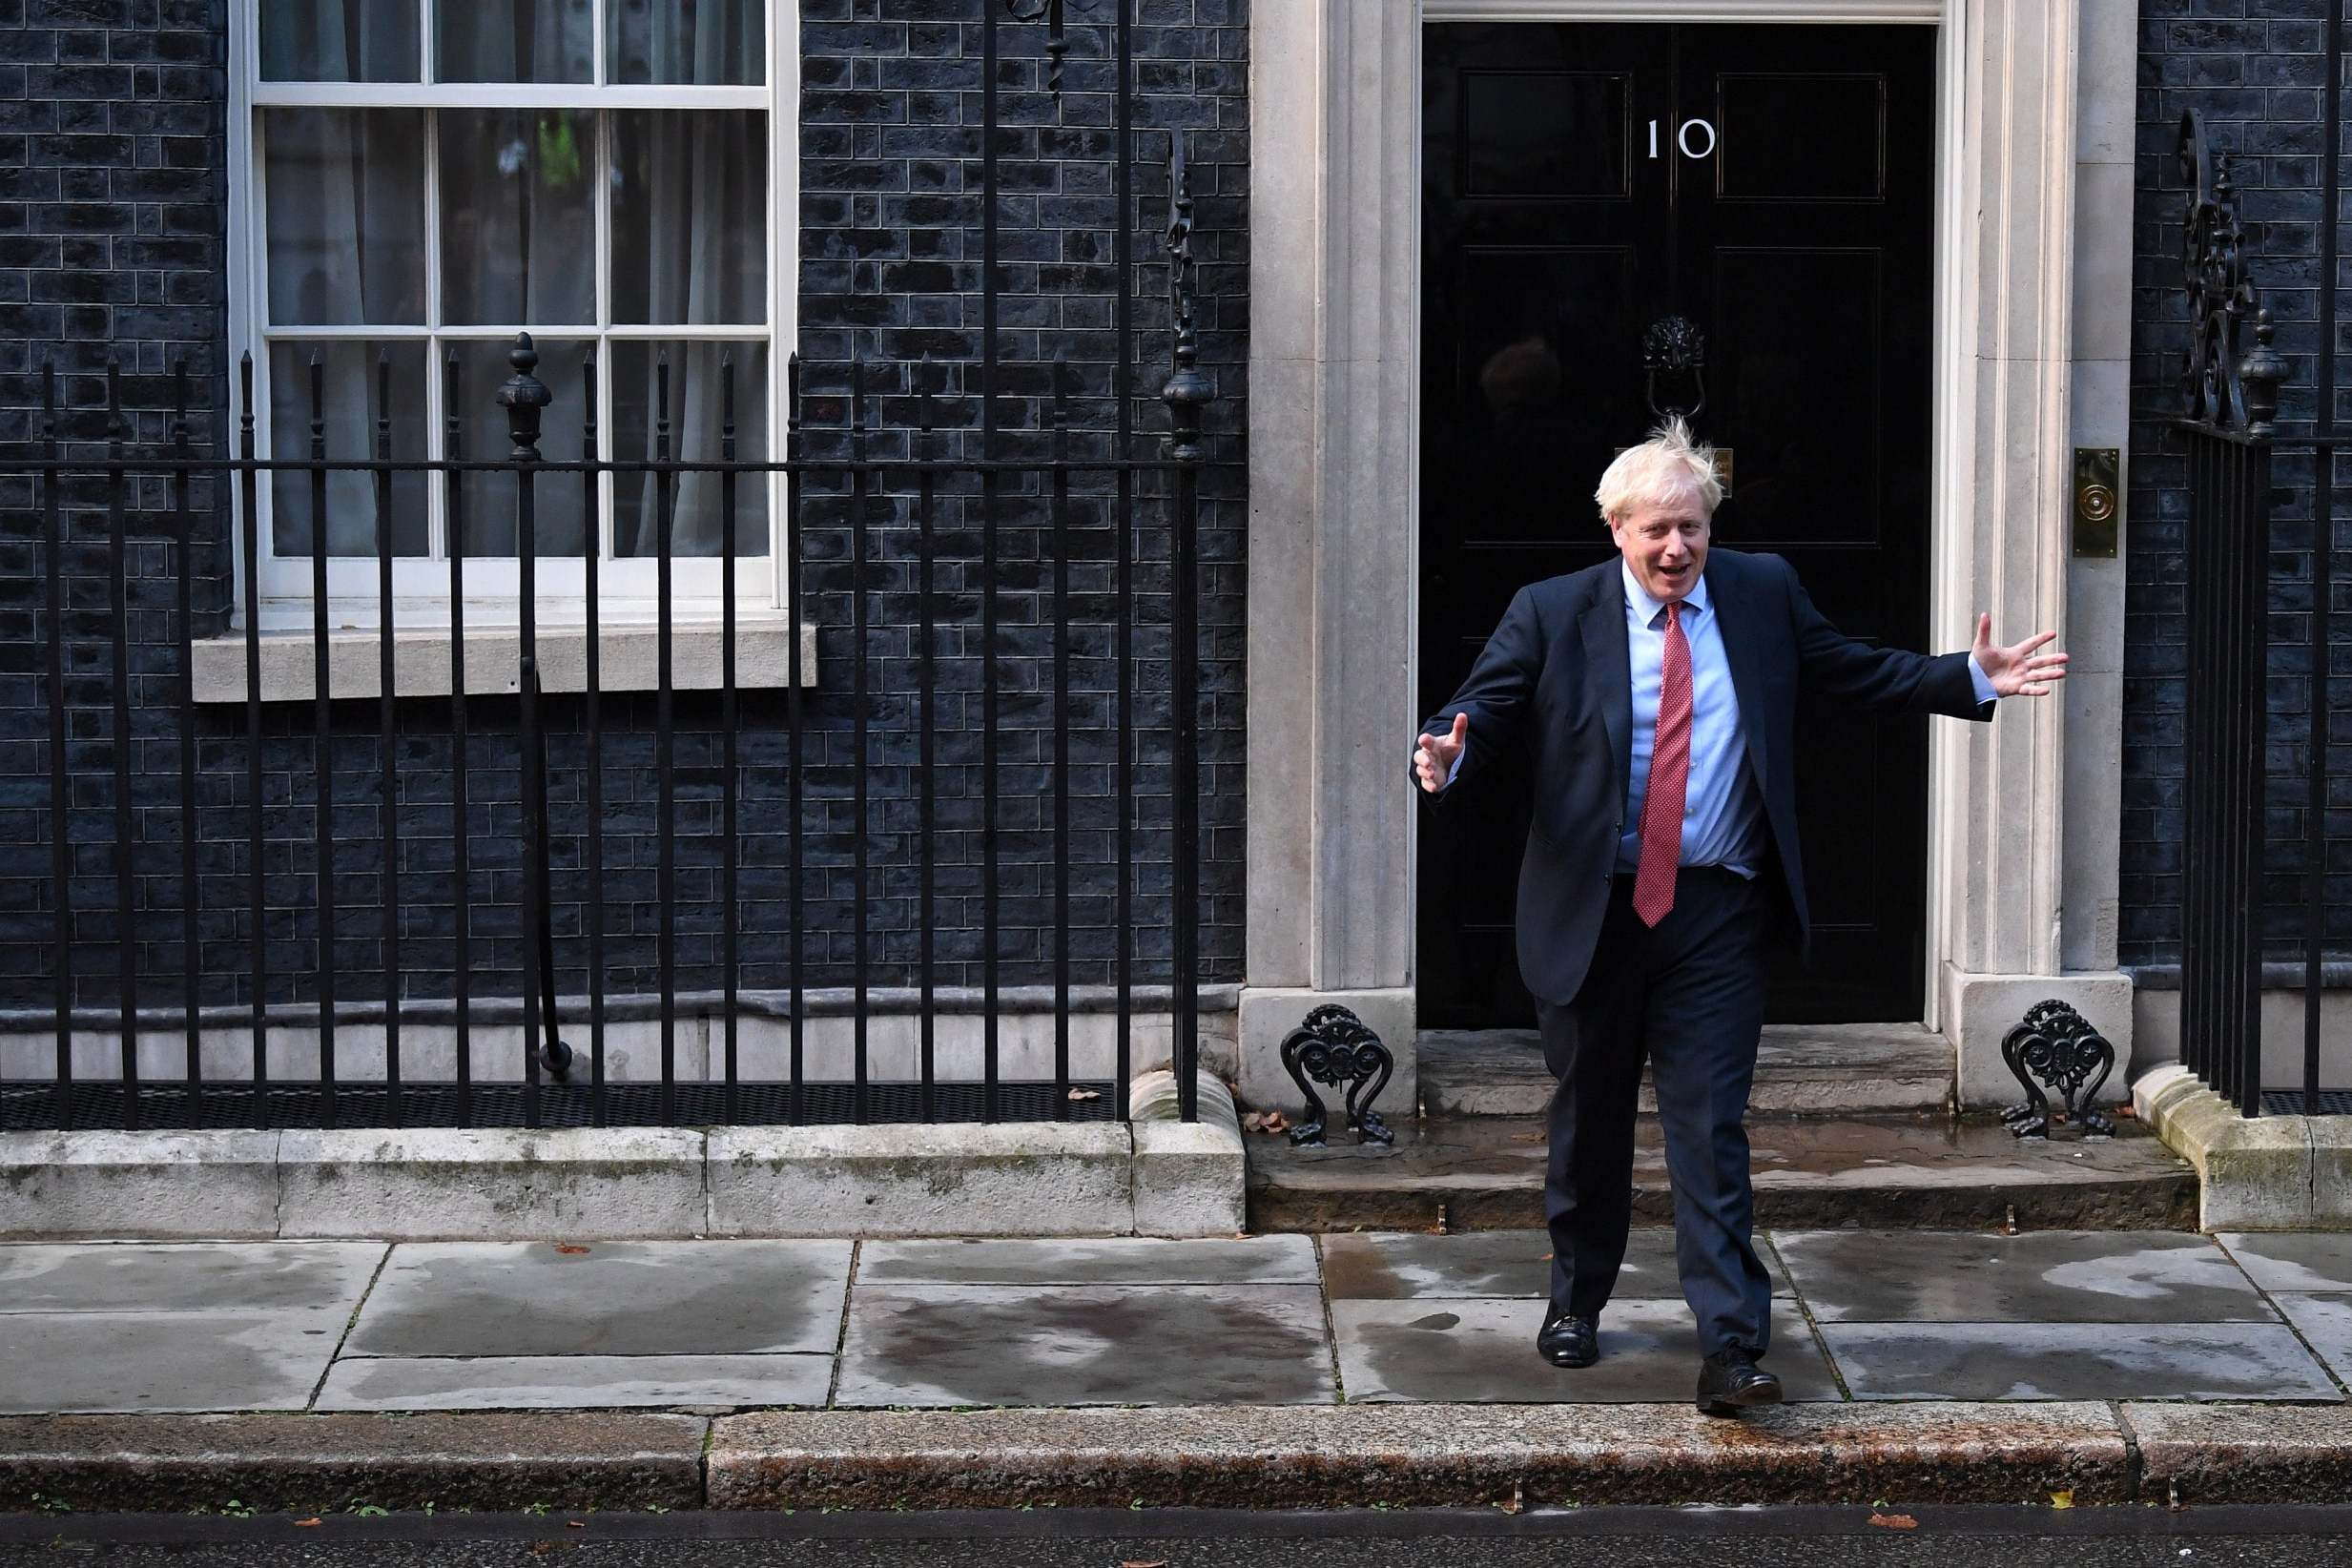 Boris Johnson is preparing to squat in Number 10 – but don't worry, there's a law to turf him out